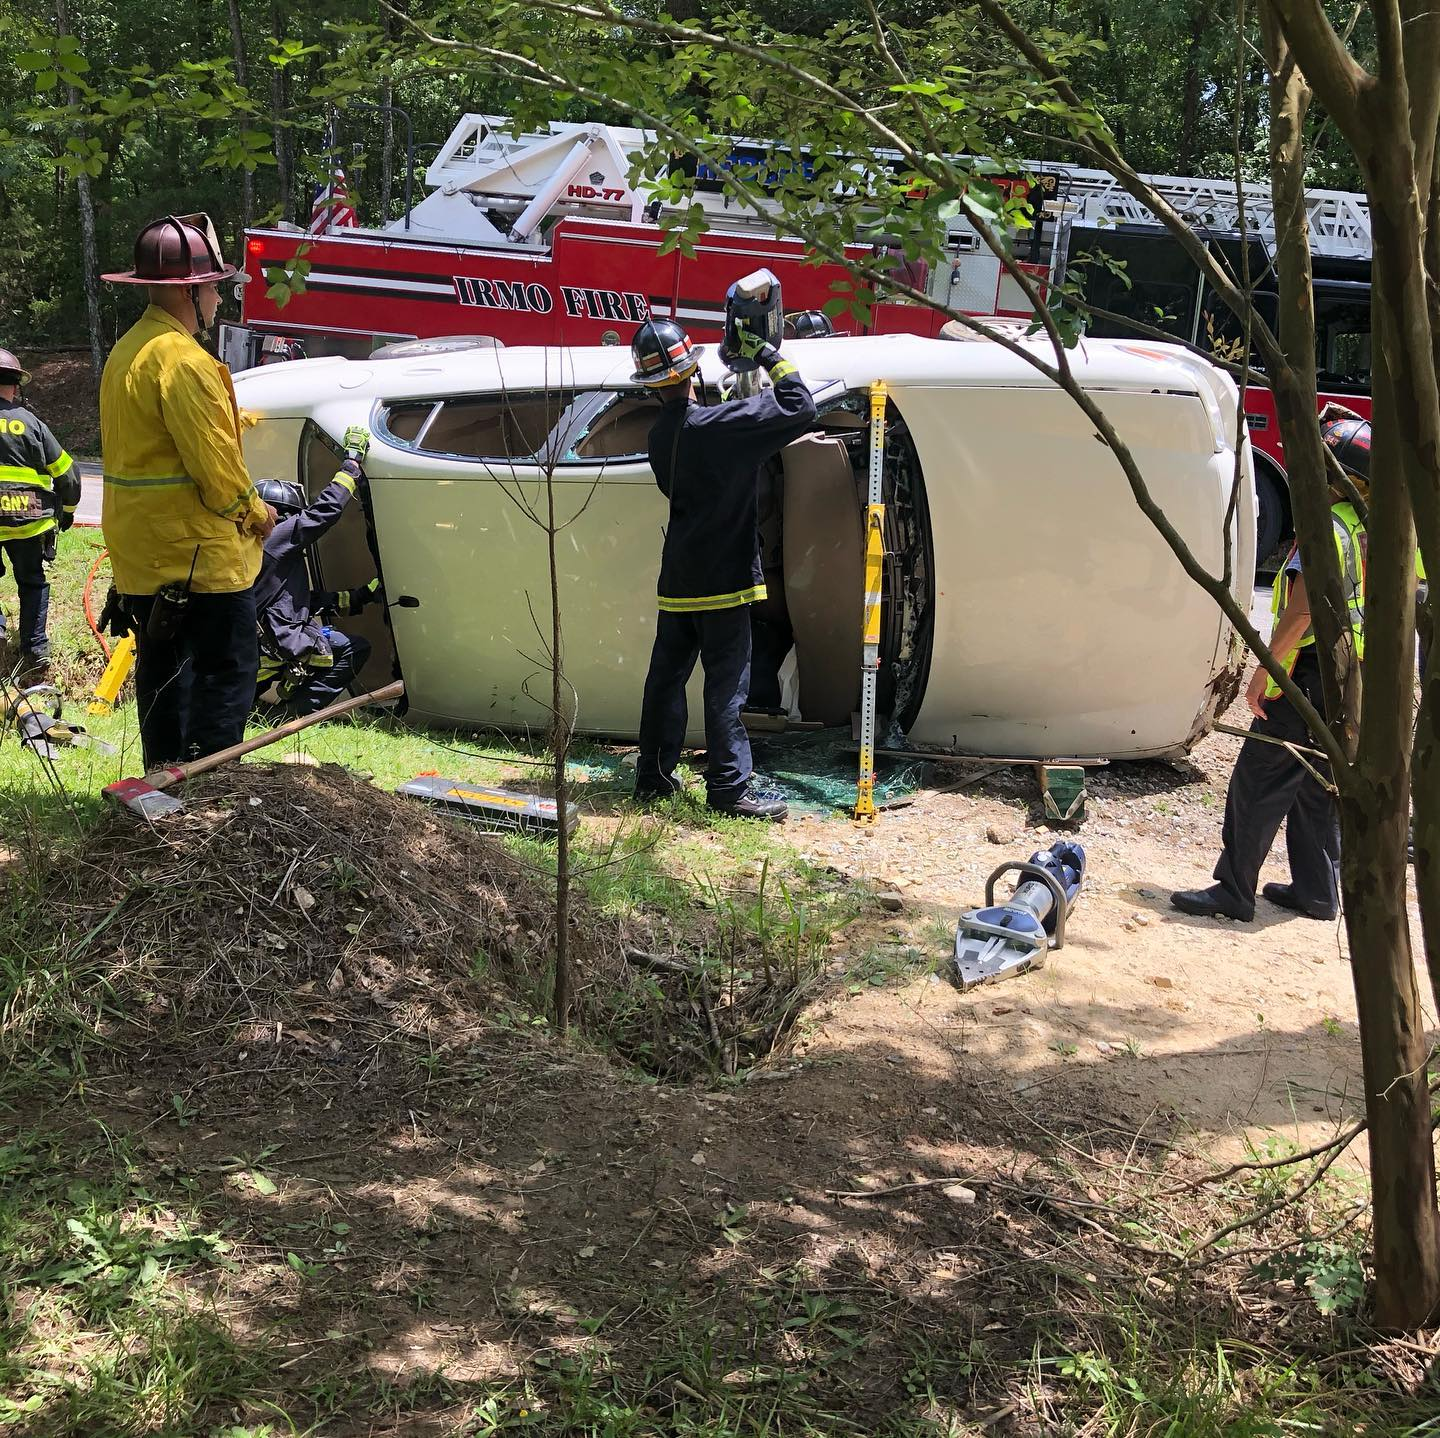 News-Vehicle Extrication 2